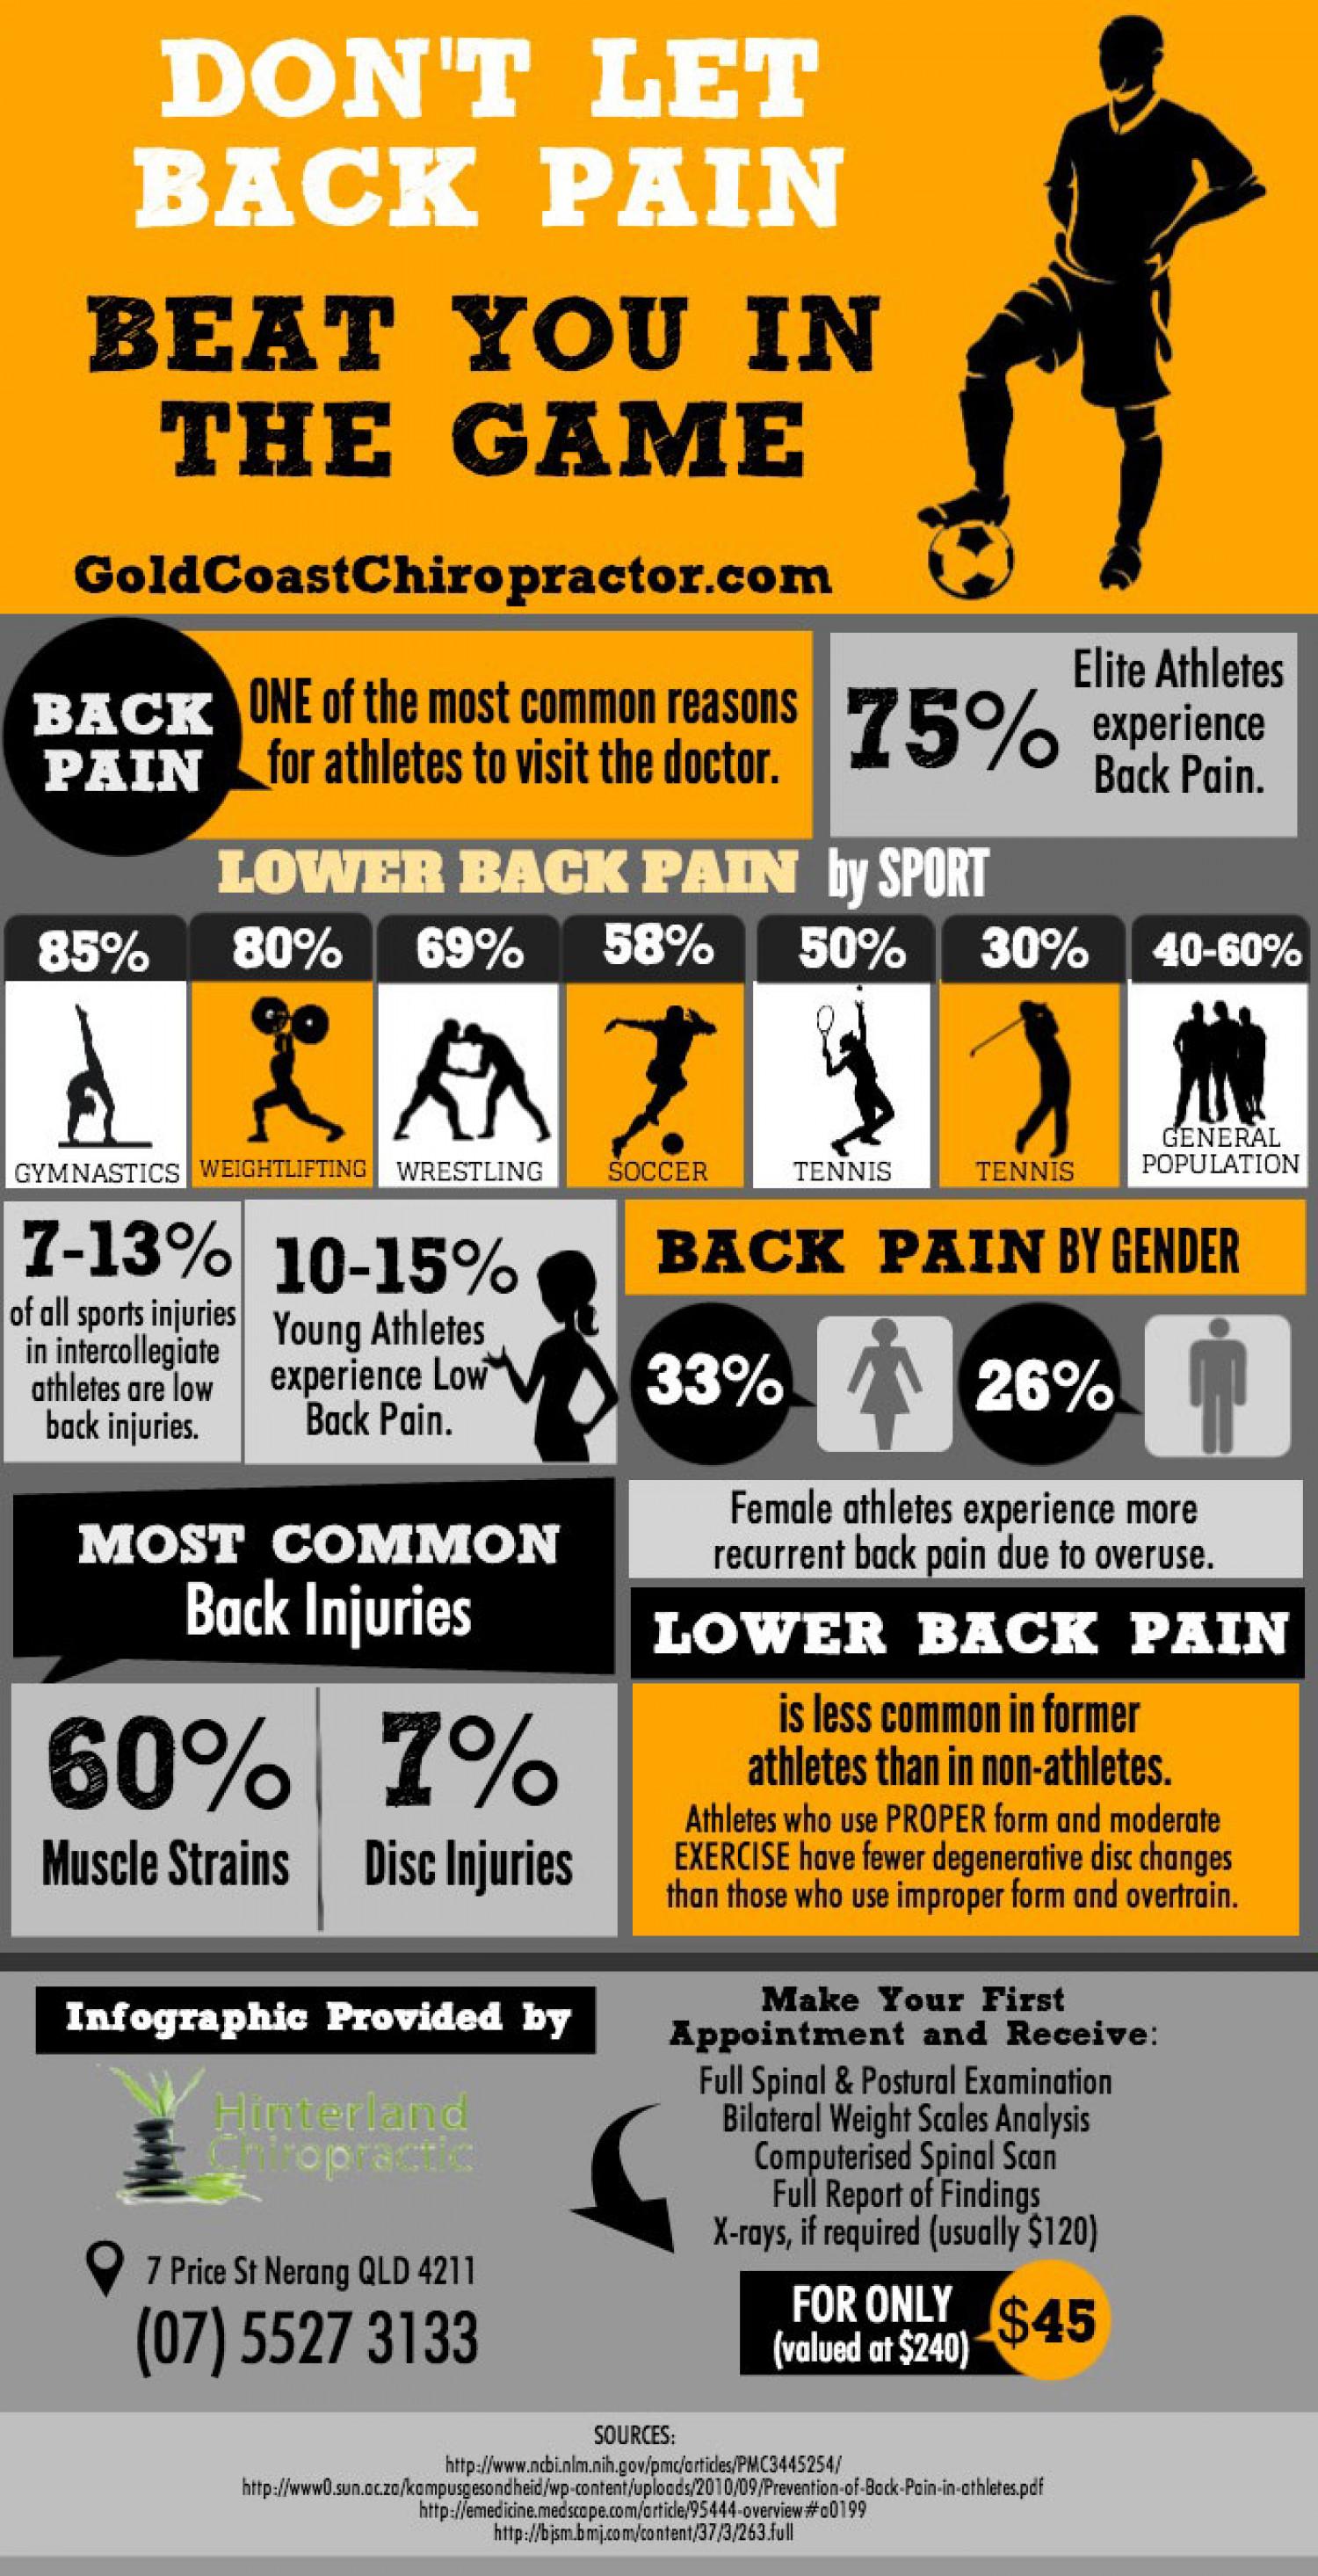 Don't Let Back Pain Beat You in the Game Infographic